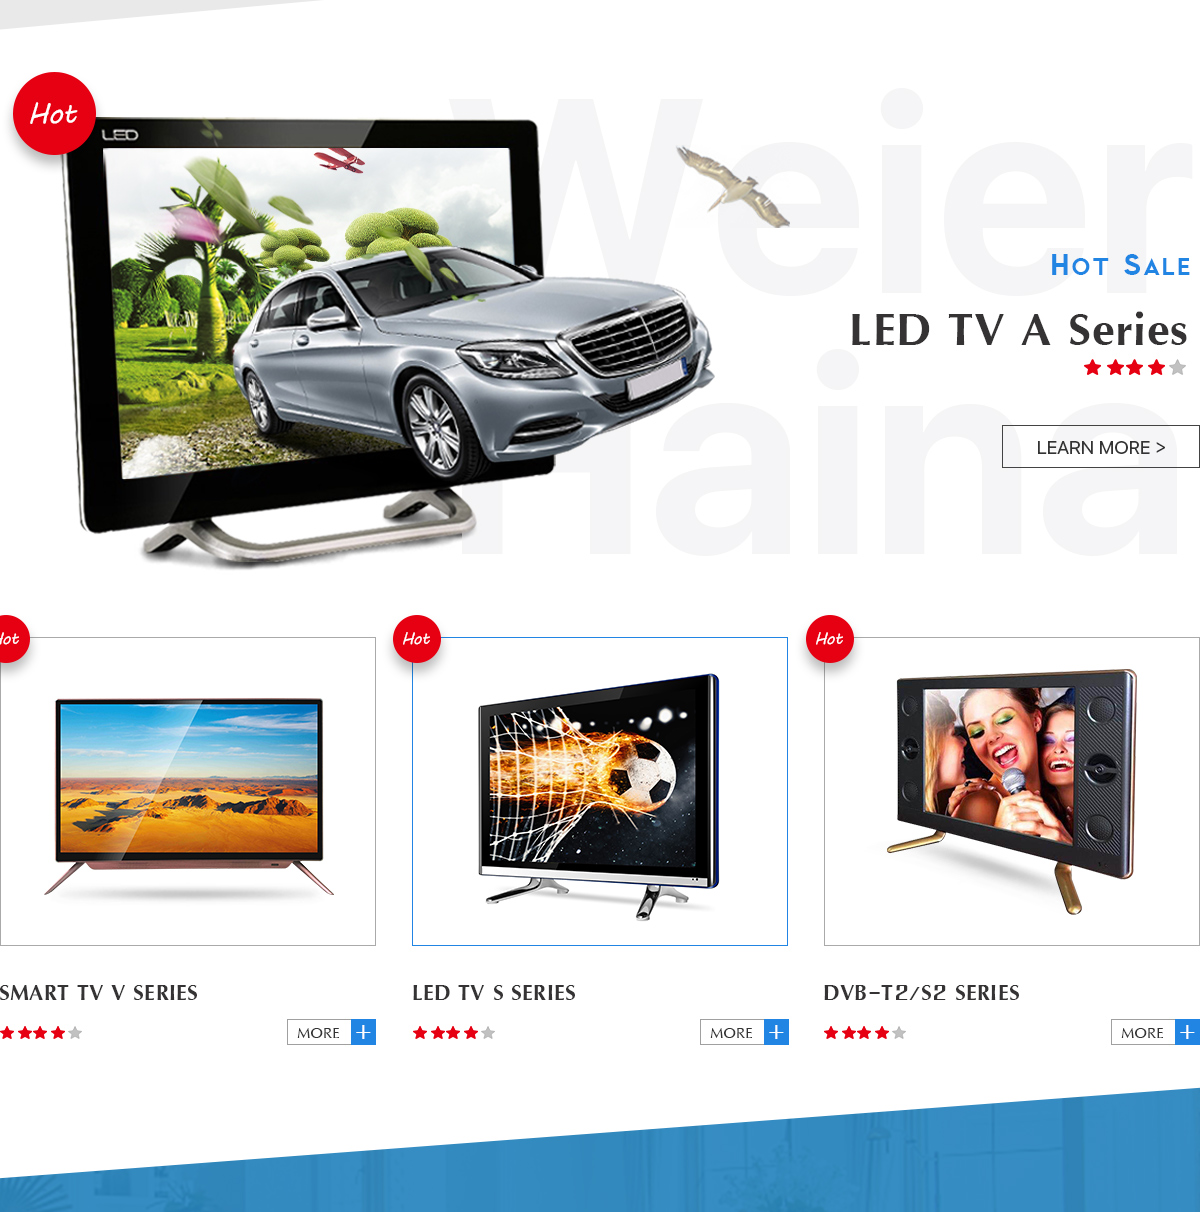 Guangzhou Weier Haina Electronic Co Ltd Led Tv Lcd Hot Deals Samsung 32fh4003 Hitam 32 Inch Chat Online